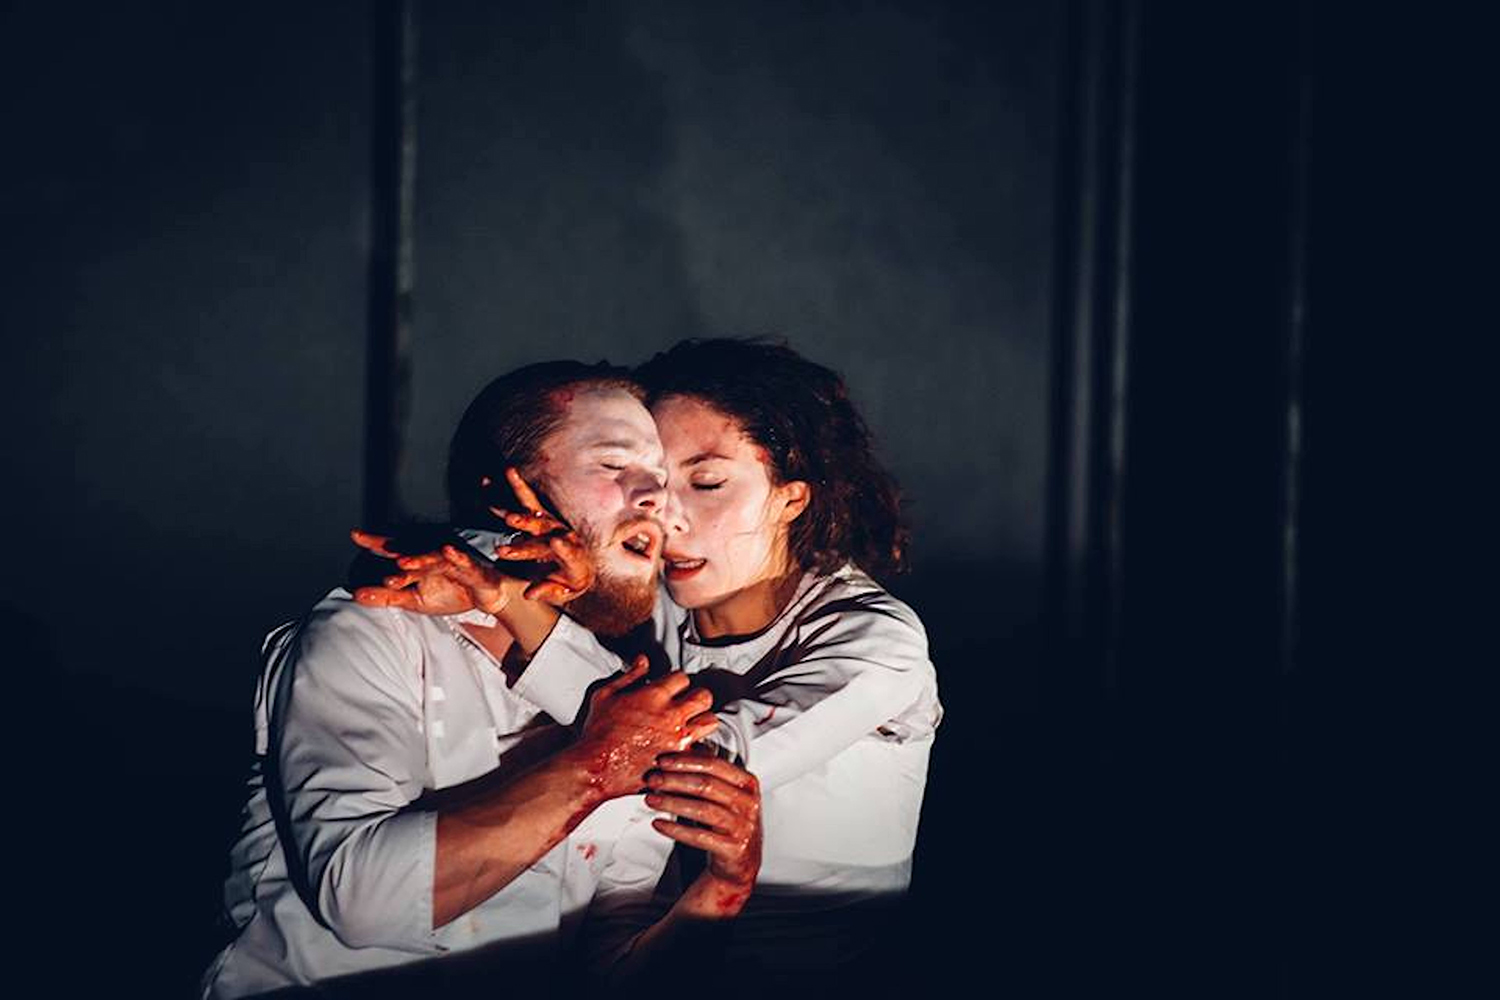 Macbeth and Lady Macbeth embrace with blood-stained hands.